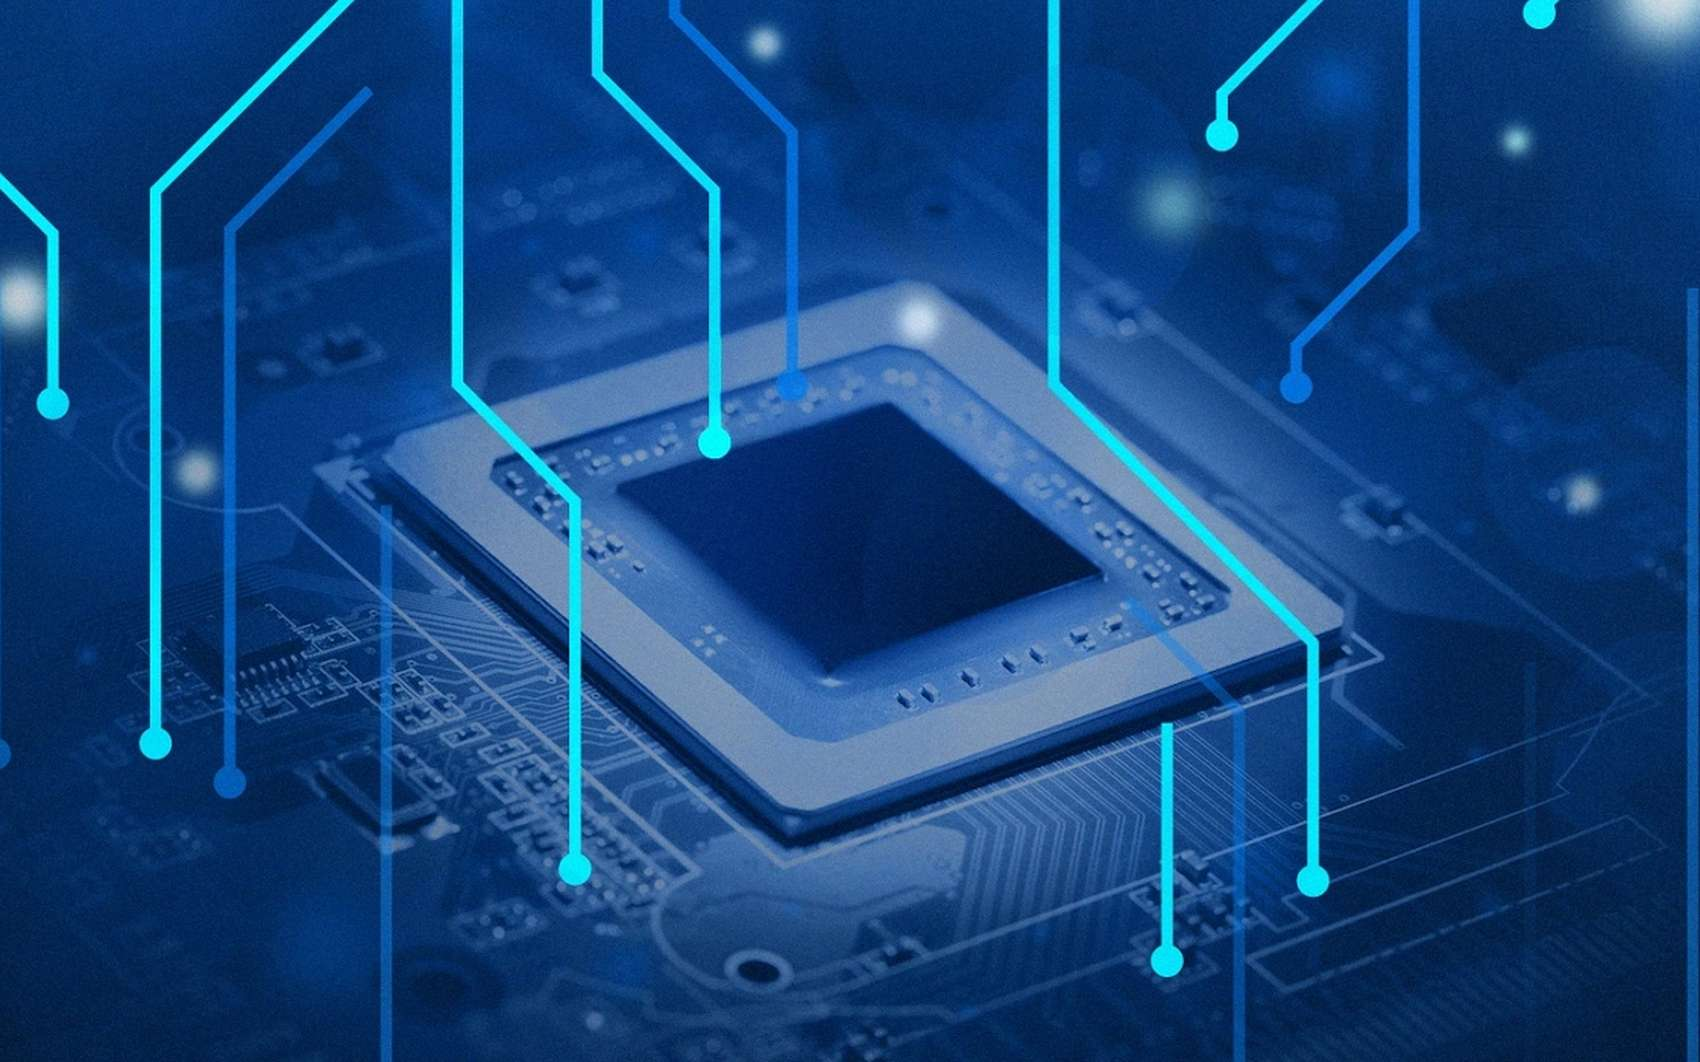 How to test the performance of your processor?